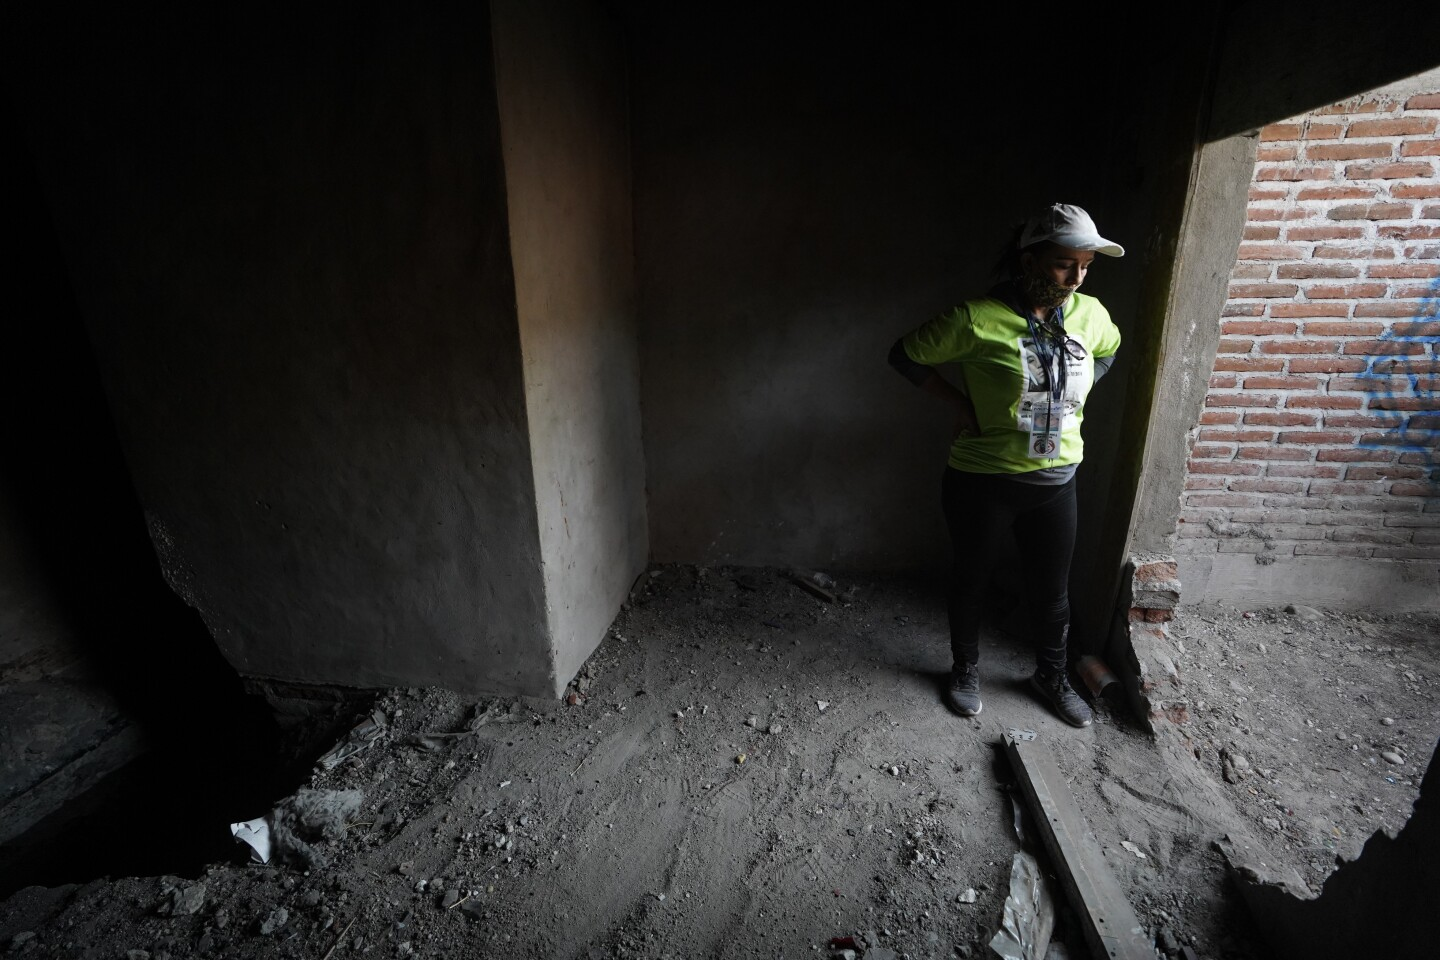 TIJUANA, BAJA CALIFORNIA - SEPTEMBER 12: Parents and family members who have formed collectives throughout Mexico help each other search for the remains of their missing children. Barbara Martinez stands inside the abandoned house where volunteers will soon begin to dig at Colonia Campos on Saturday, Sept. 12, 2020 in Tijuana, Baja California. (Alejandro Tamayo / The San Diego Union-Tribune)